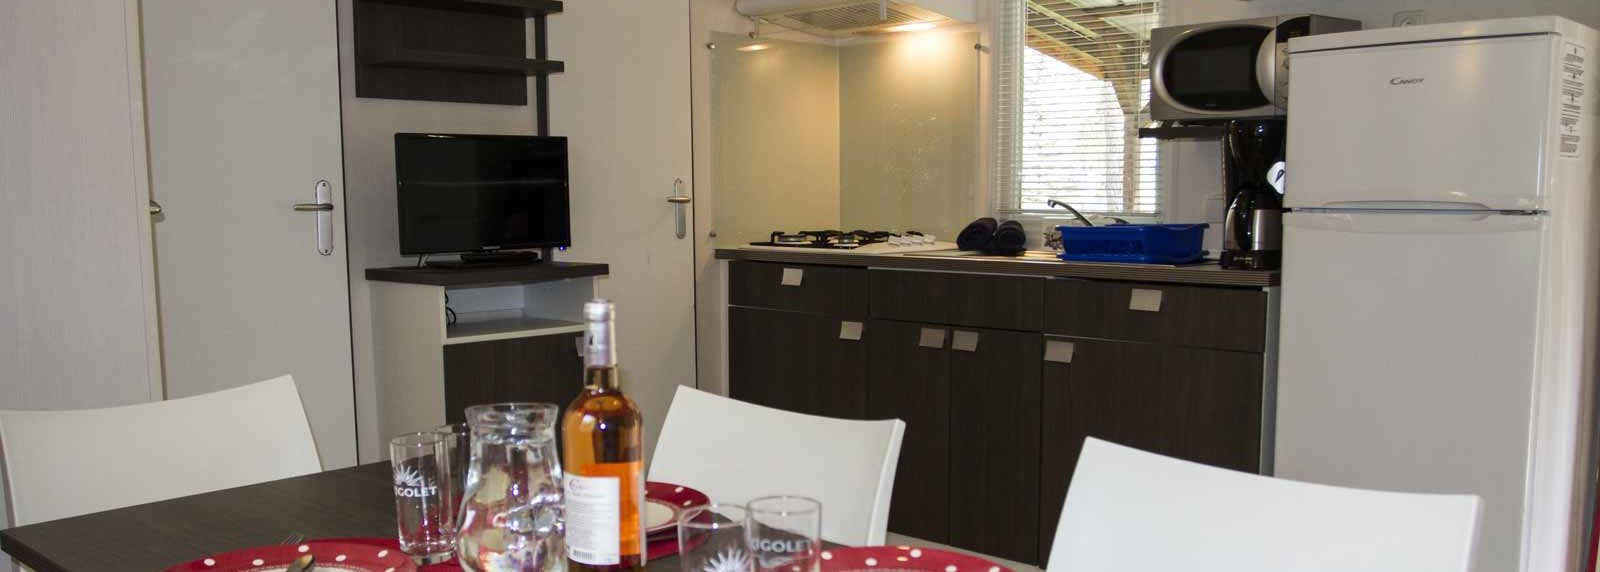 Mobil-home 1-6 pers 3 chambres